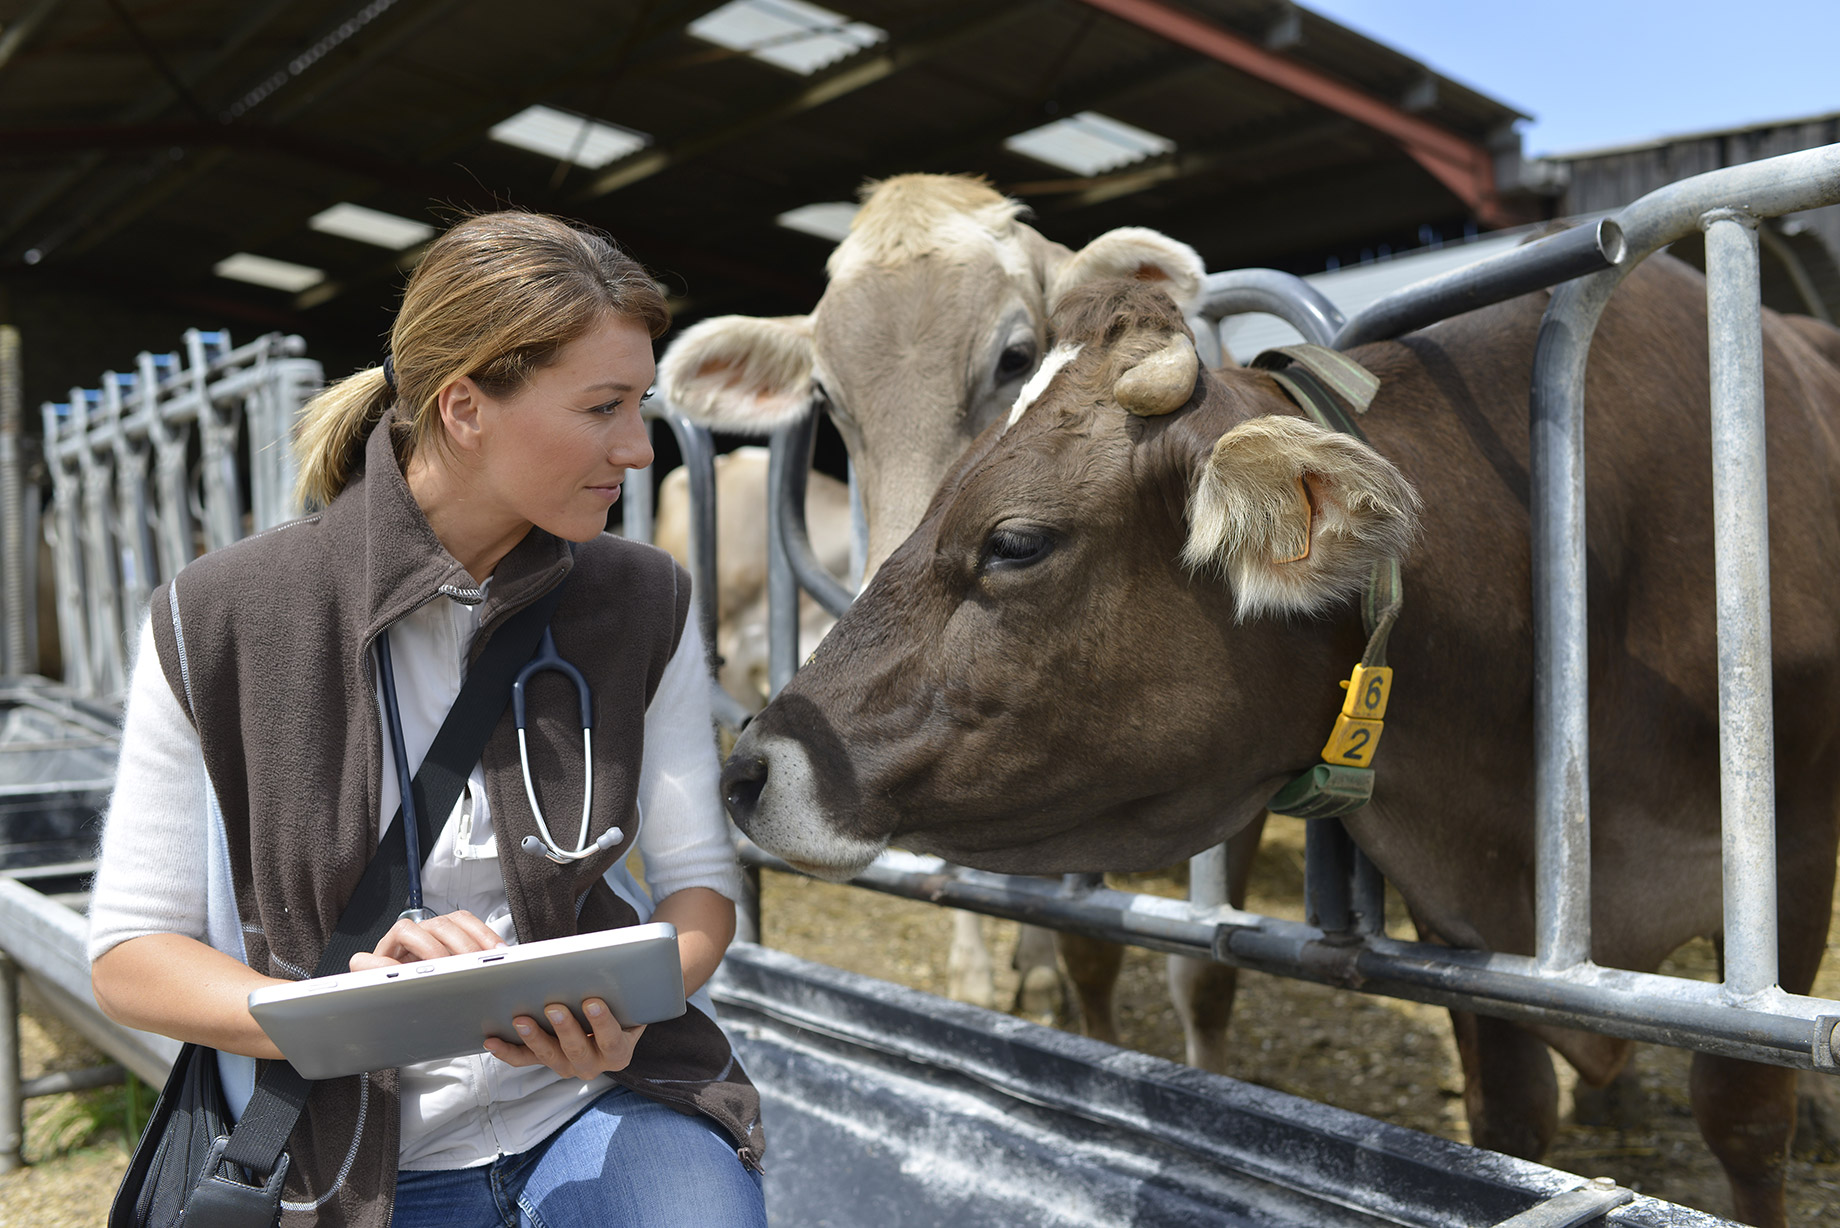 How can farm vets contribute to sustainability?